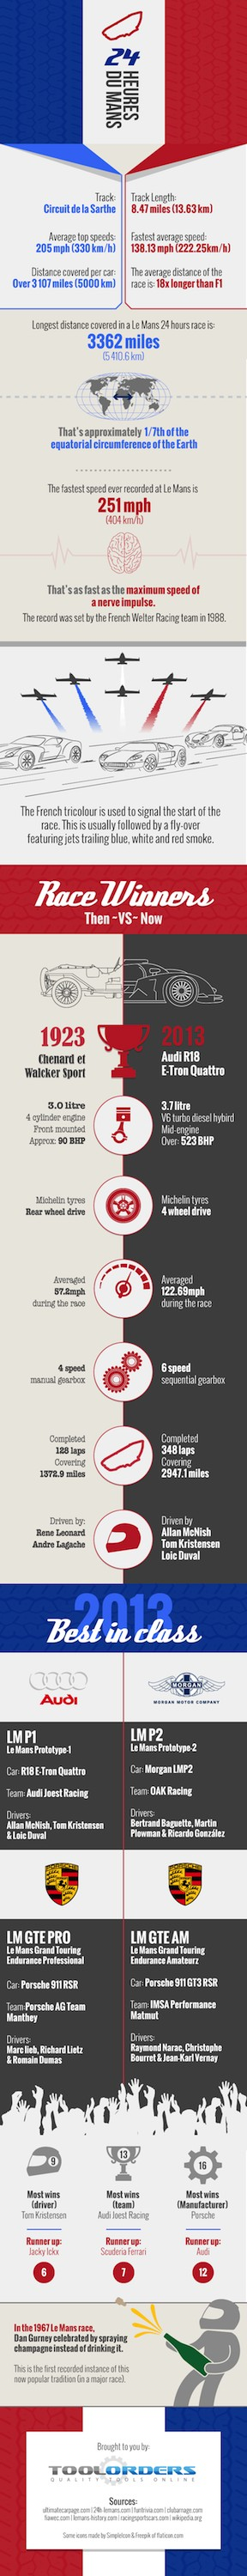 2014 24 Hours of Le Mans infographic